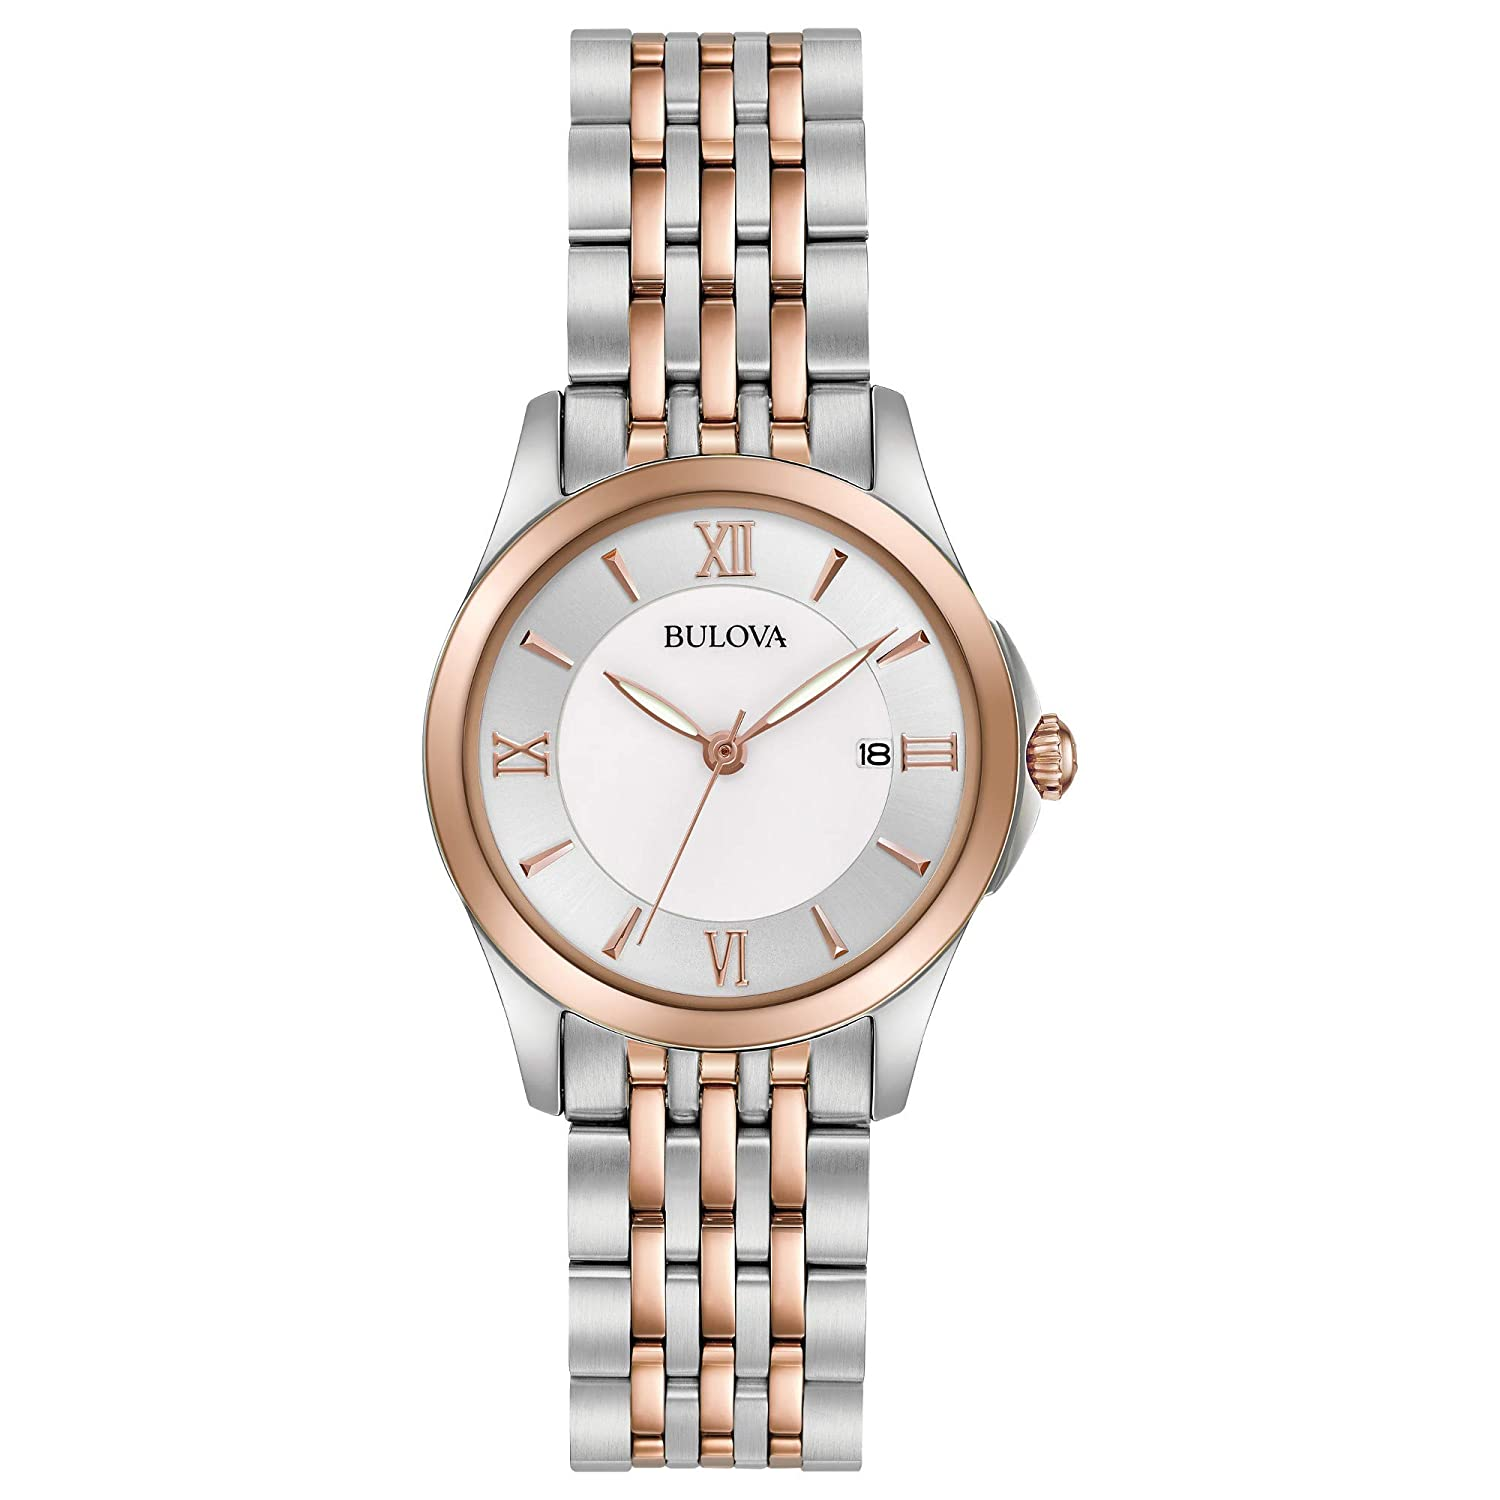 Bulova Women s 27mm Classic Mother of Pearl Dial Two-Tone Stainless Steel Bracelet Watch